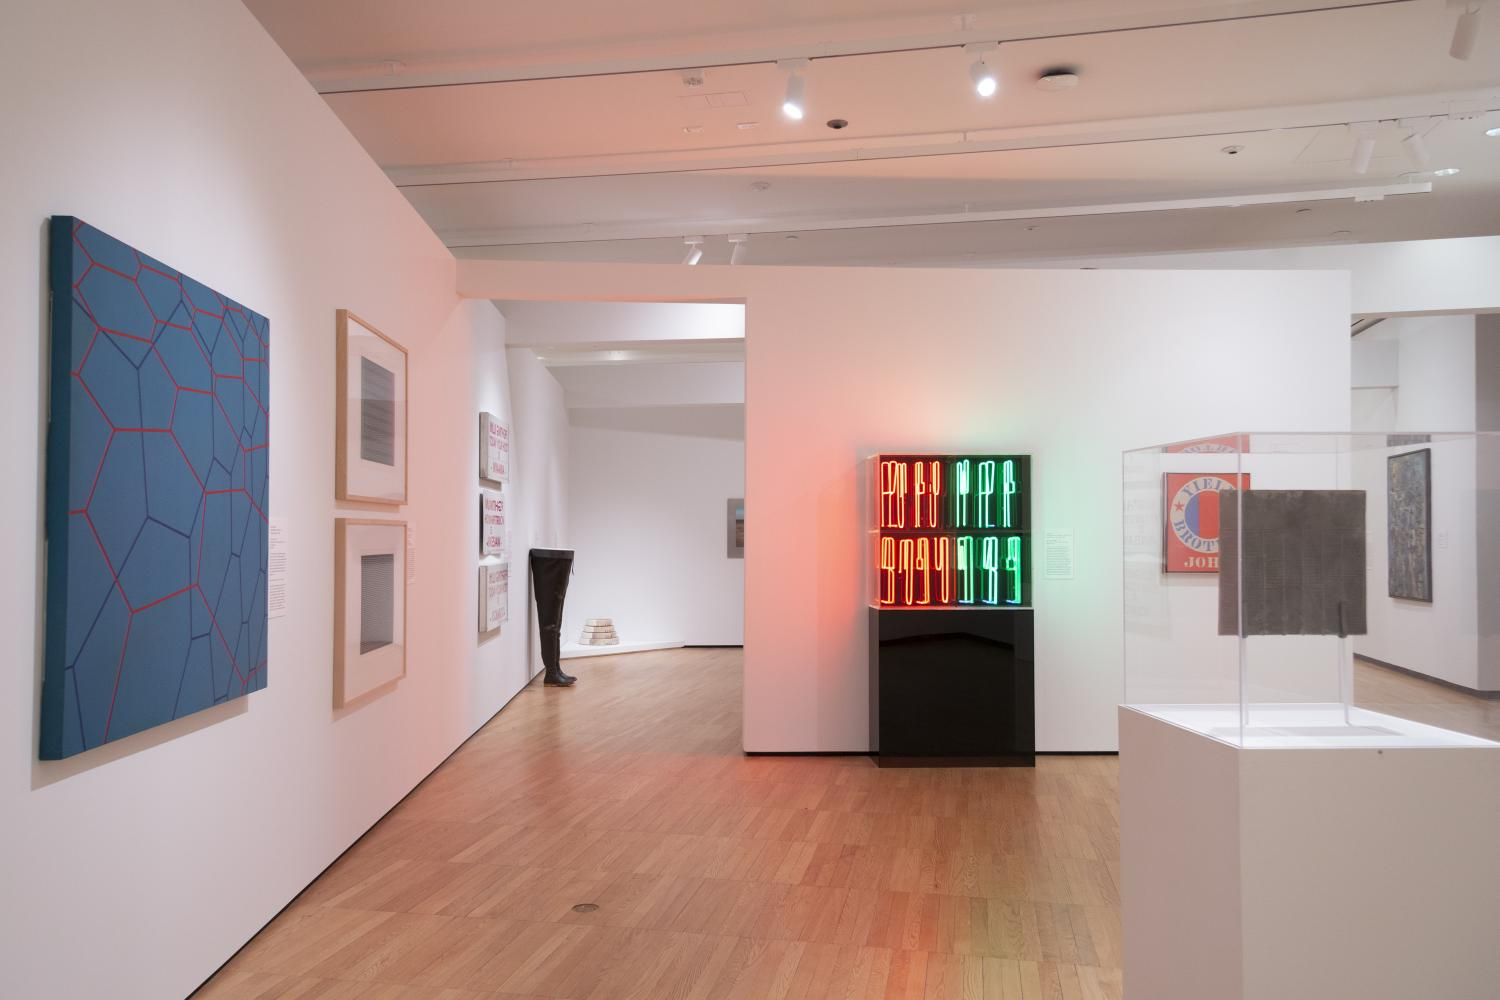 "Art gallery with white walls; at close left is a hard-edge hexagon painting by June Harwood, at center against wall is a pair of hip waders with a dish of water in them 'Body Fluid' by Annette Lemieux, at center right is a neon sign ""Automat"" by Chrissa"